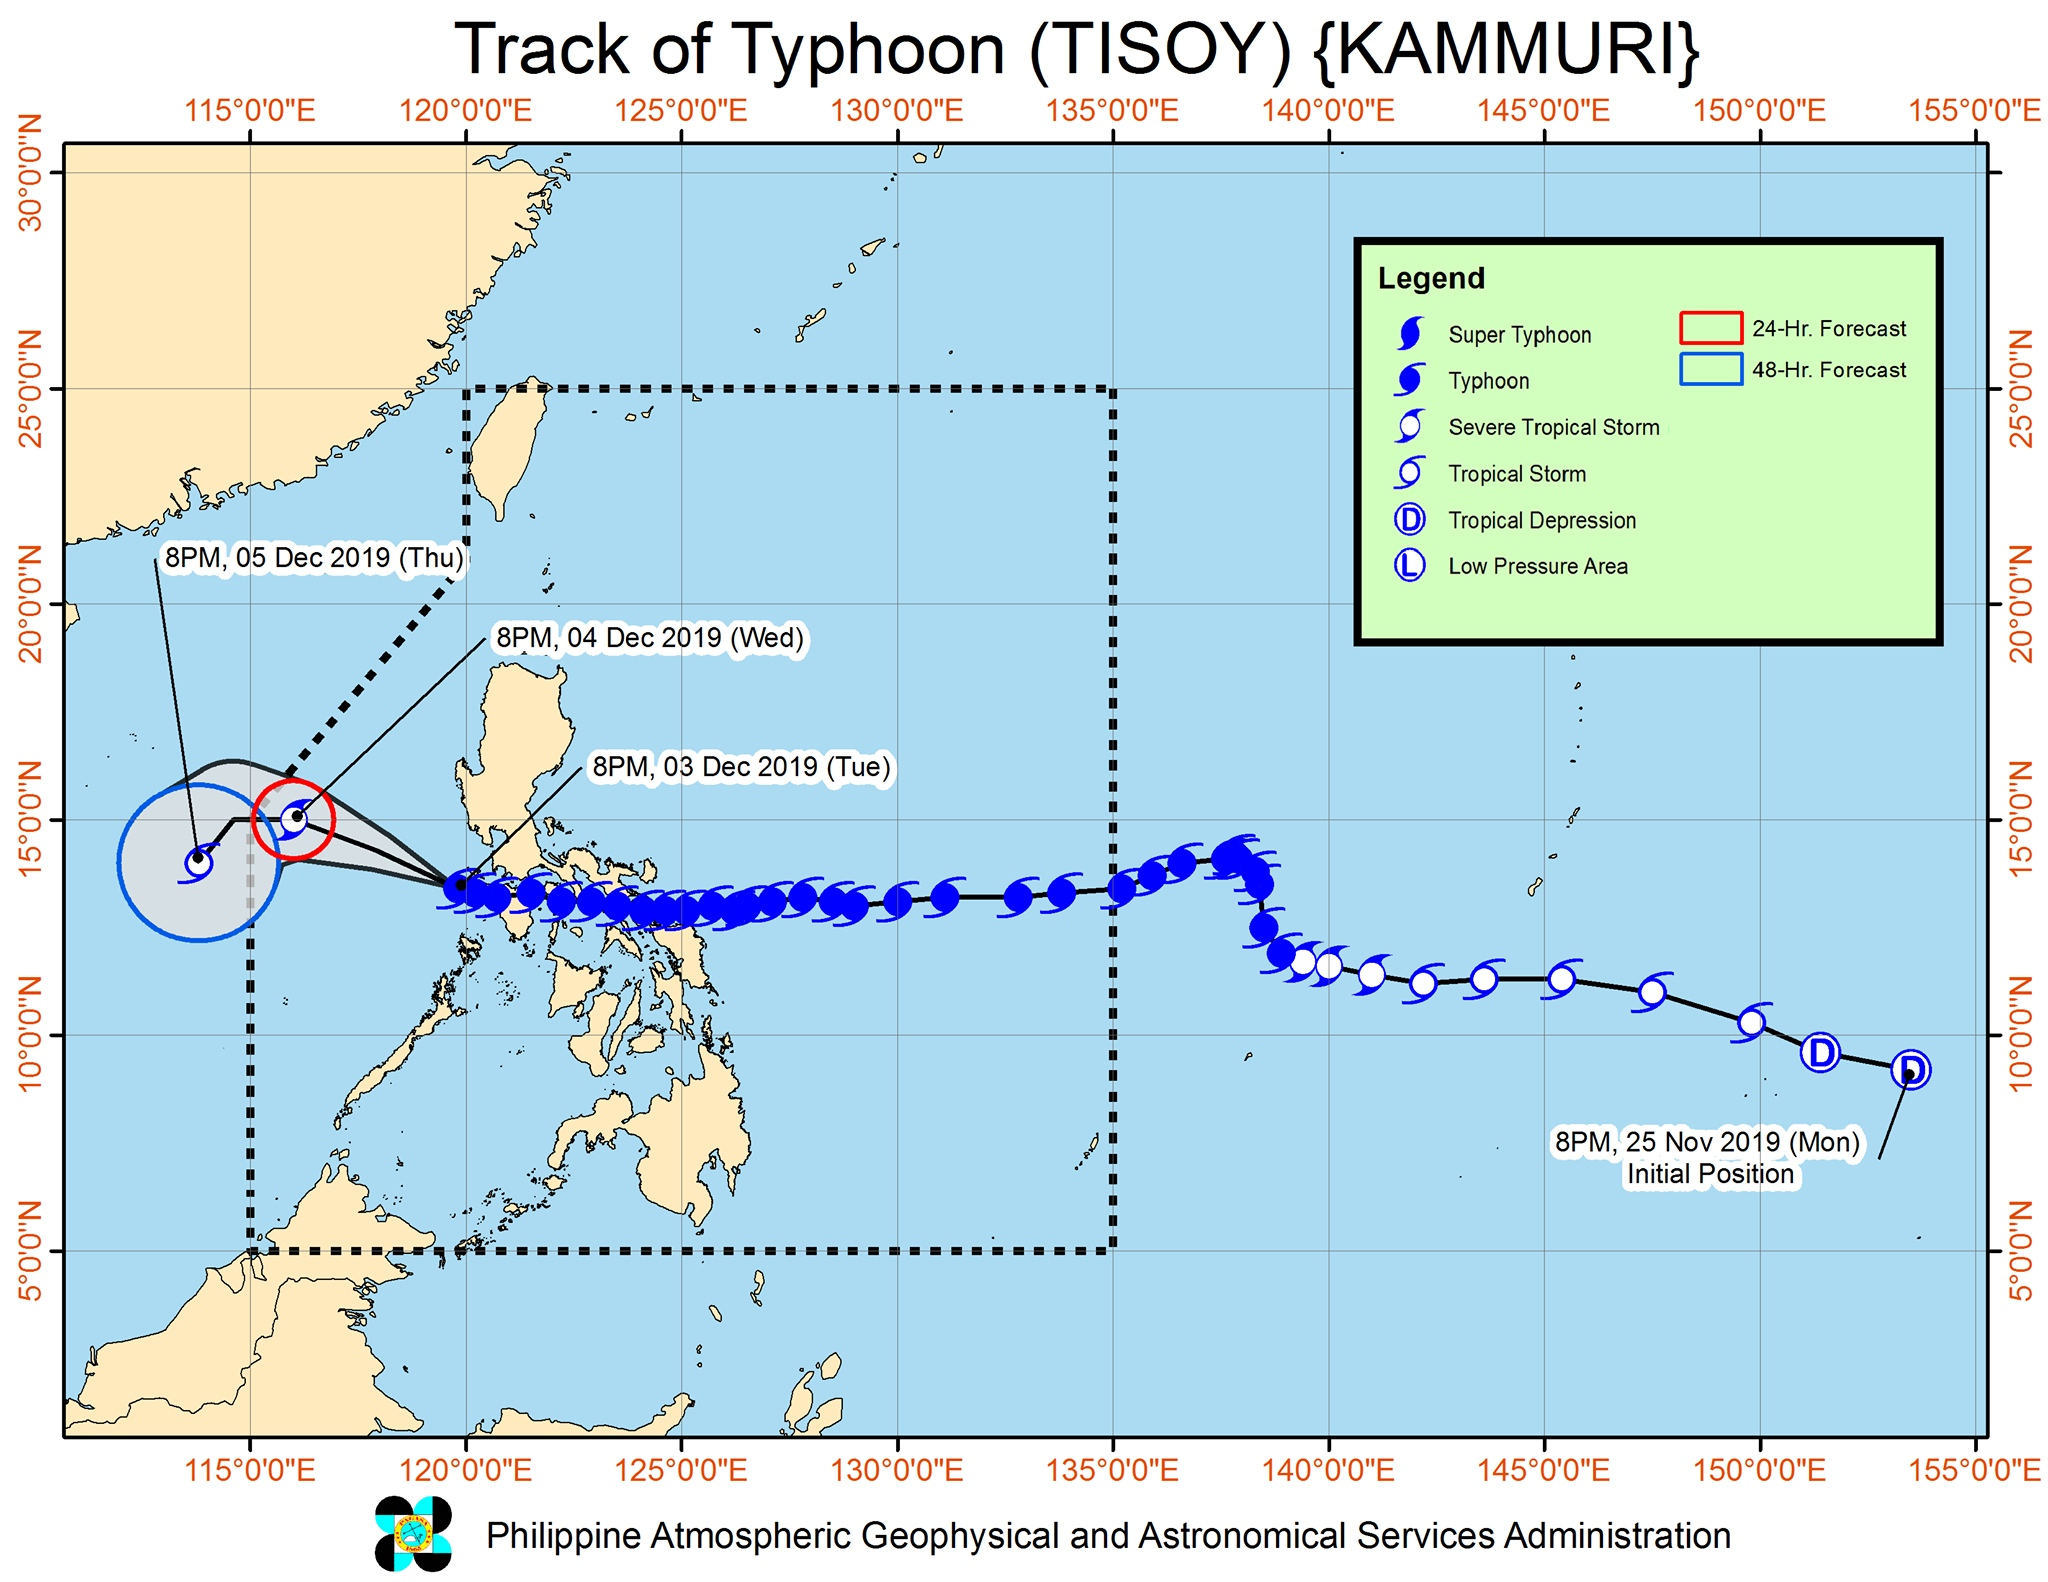 Forecast track of Typhoon Tisoy (Kammuri) as of December 3, 2019, 11 pm. Image from PAGASA